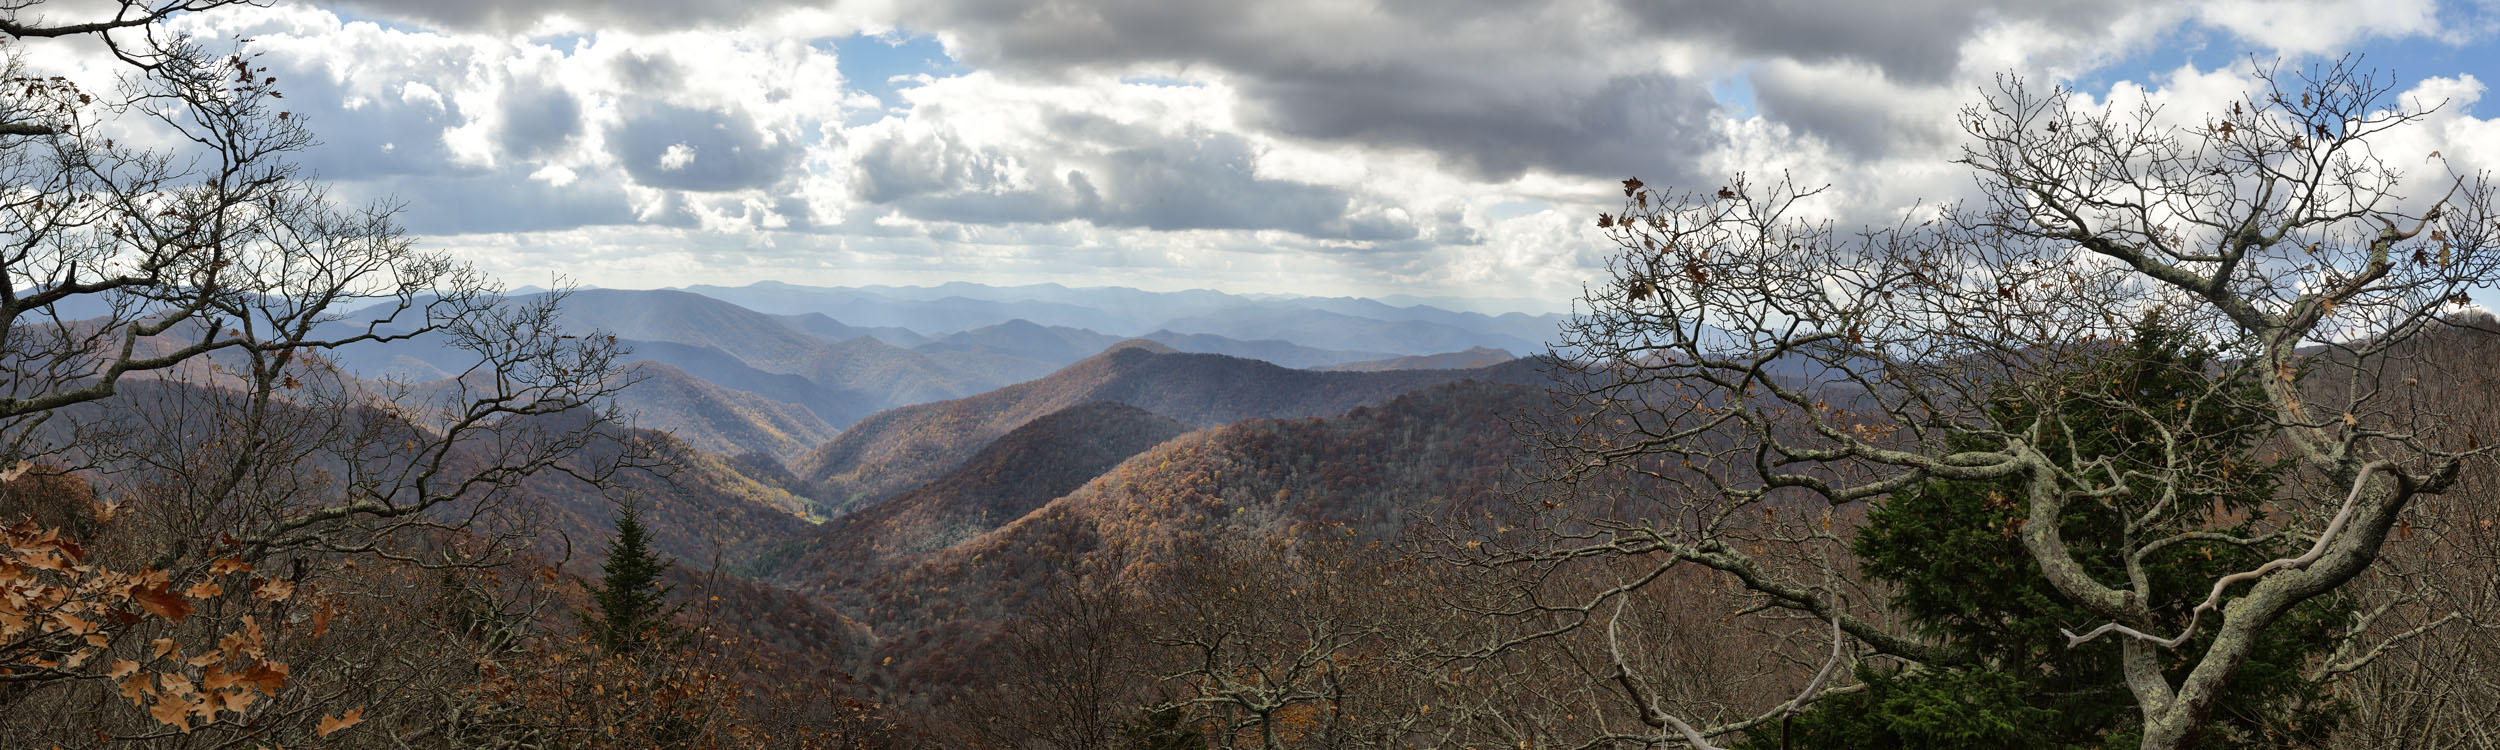 View frrom Blue Ridge Before Storm, NC